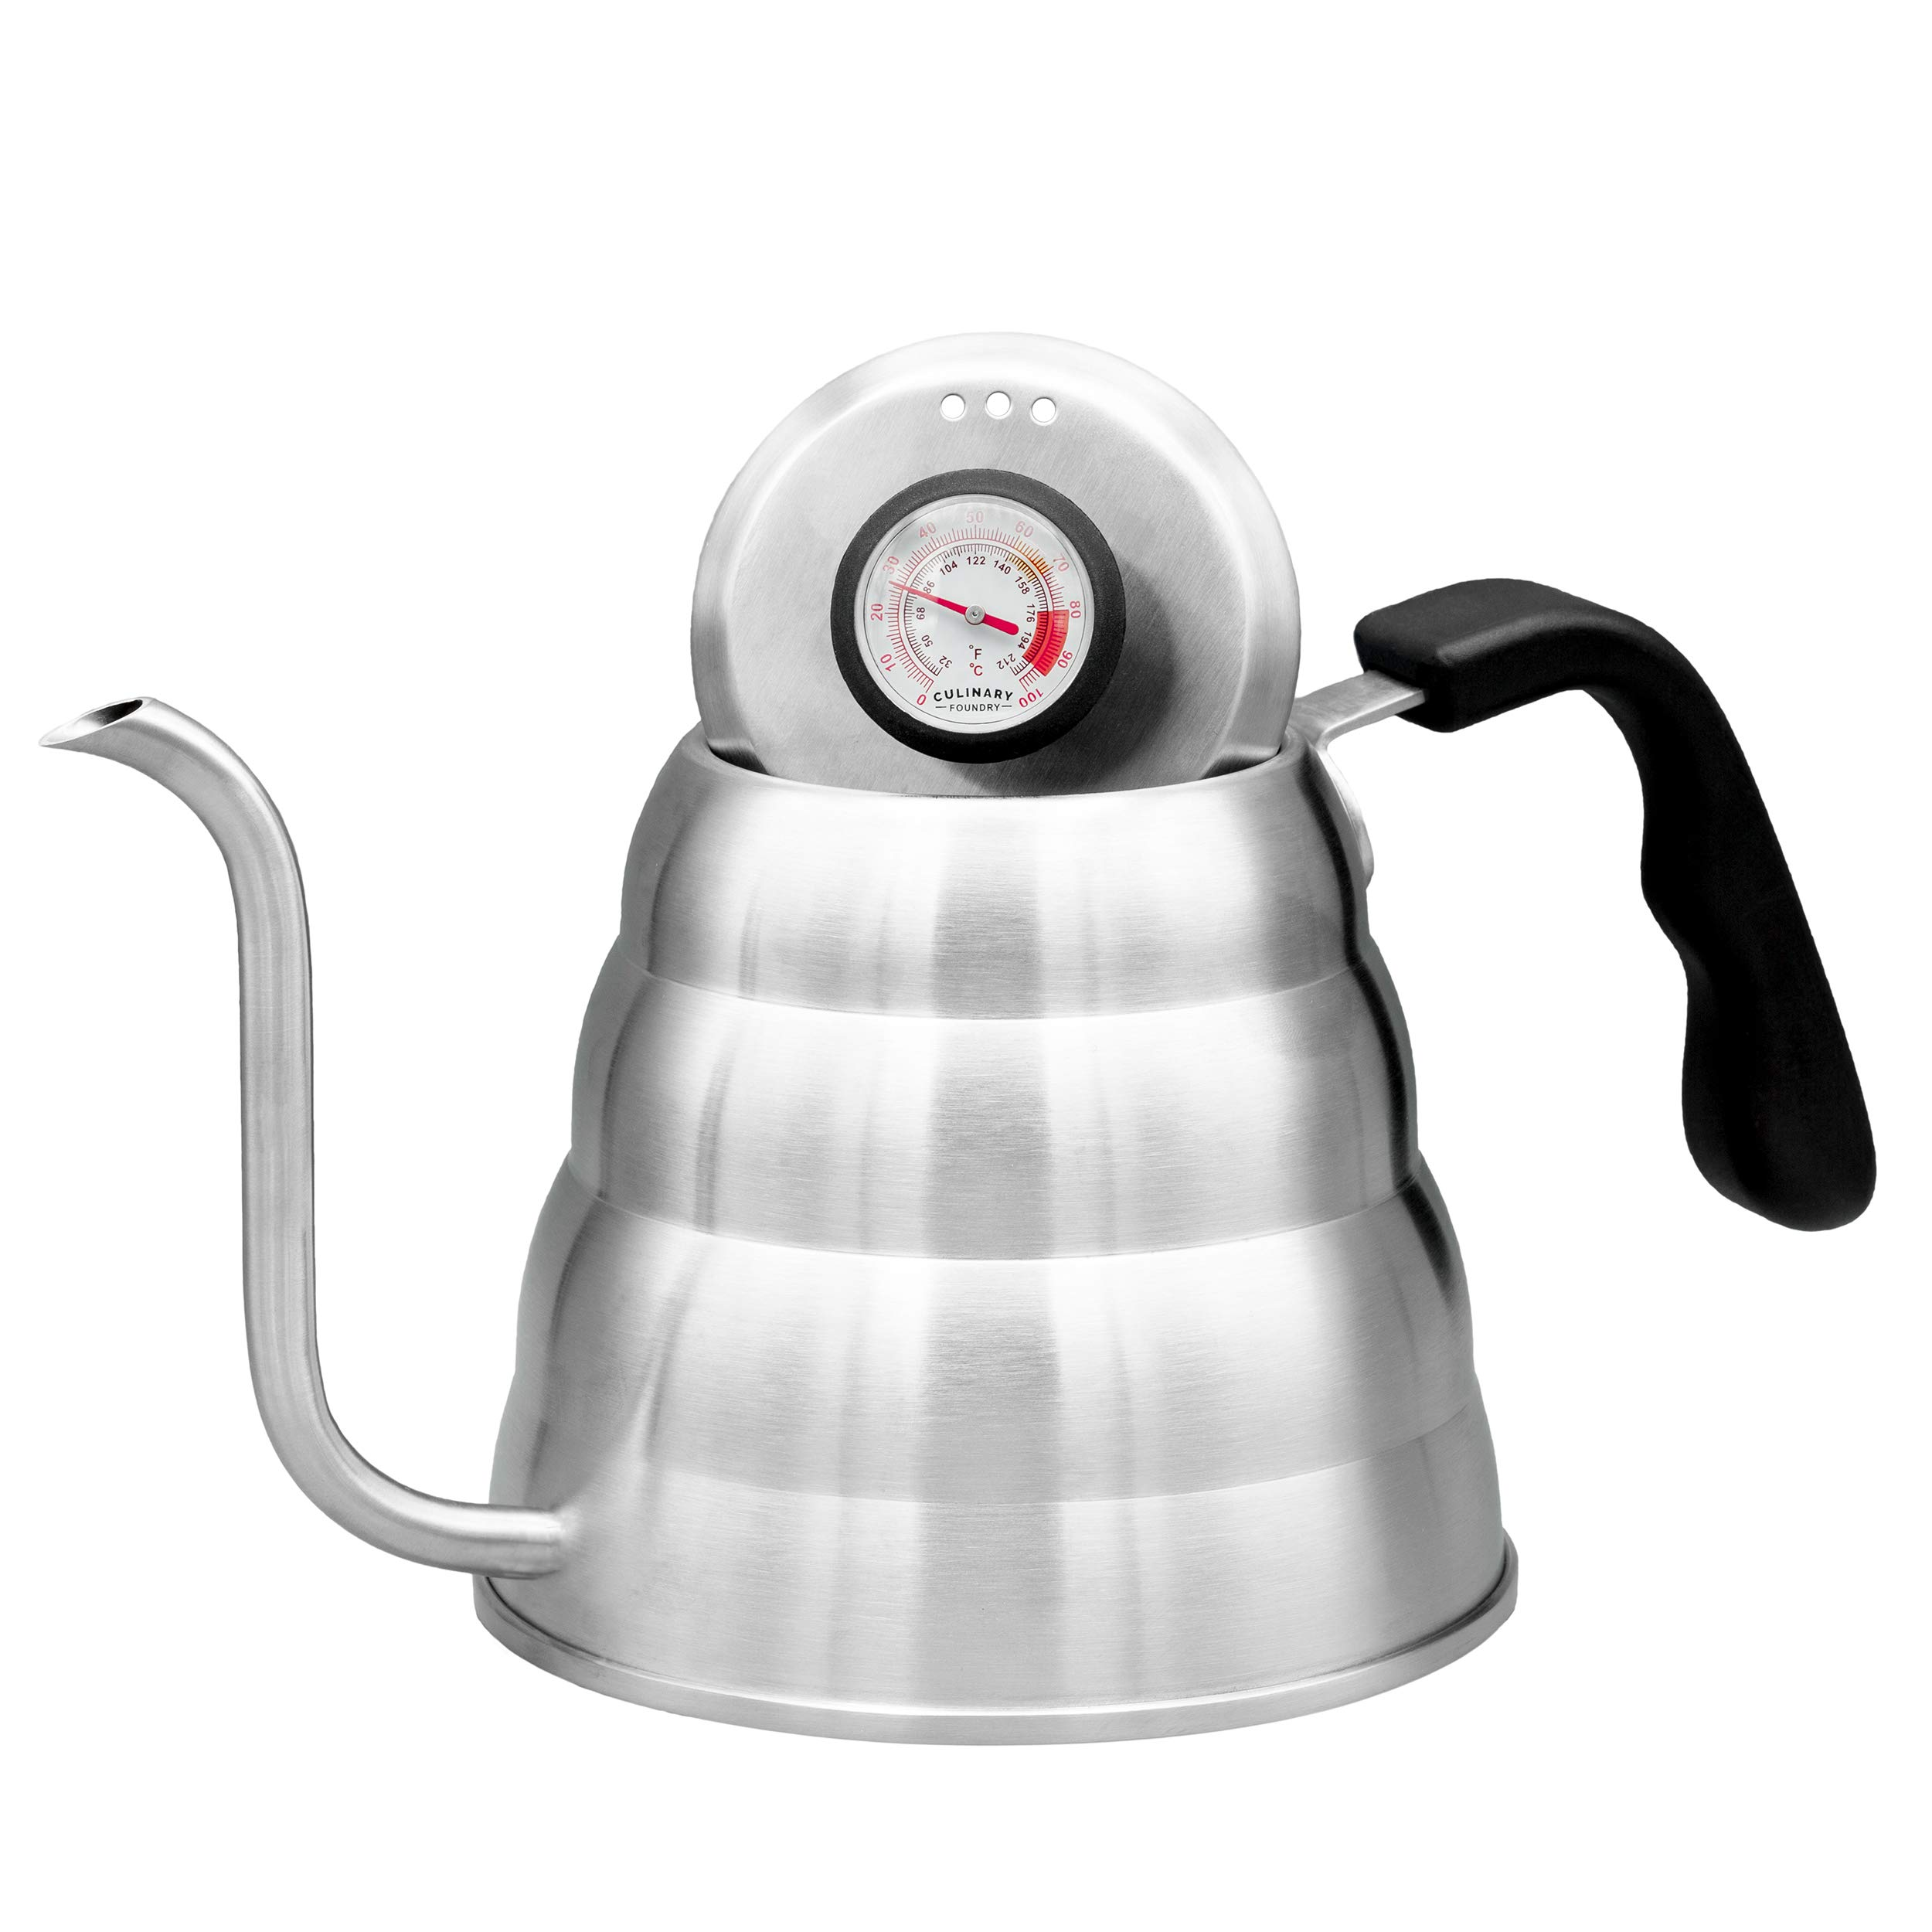 Pour Over Coffee Kettle With Gooseneck Spout by Culinary Foundry - 1.2 Liter Capacity Made of Premium Stainless Steel With Built-In Thermometer - Achieves Perfect Water Temperature Every Time by Culinary Foundry (Image #4)